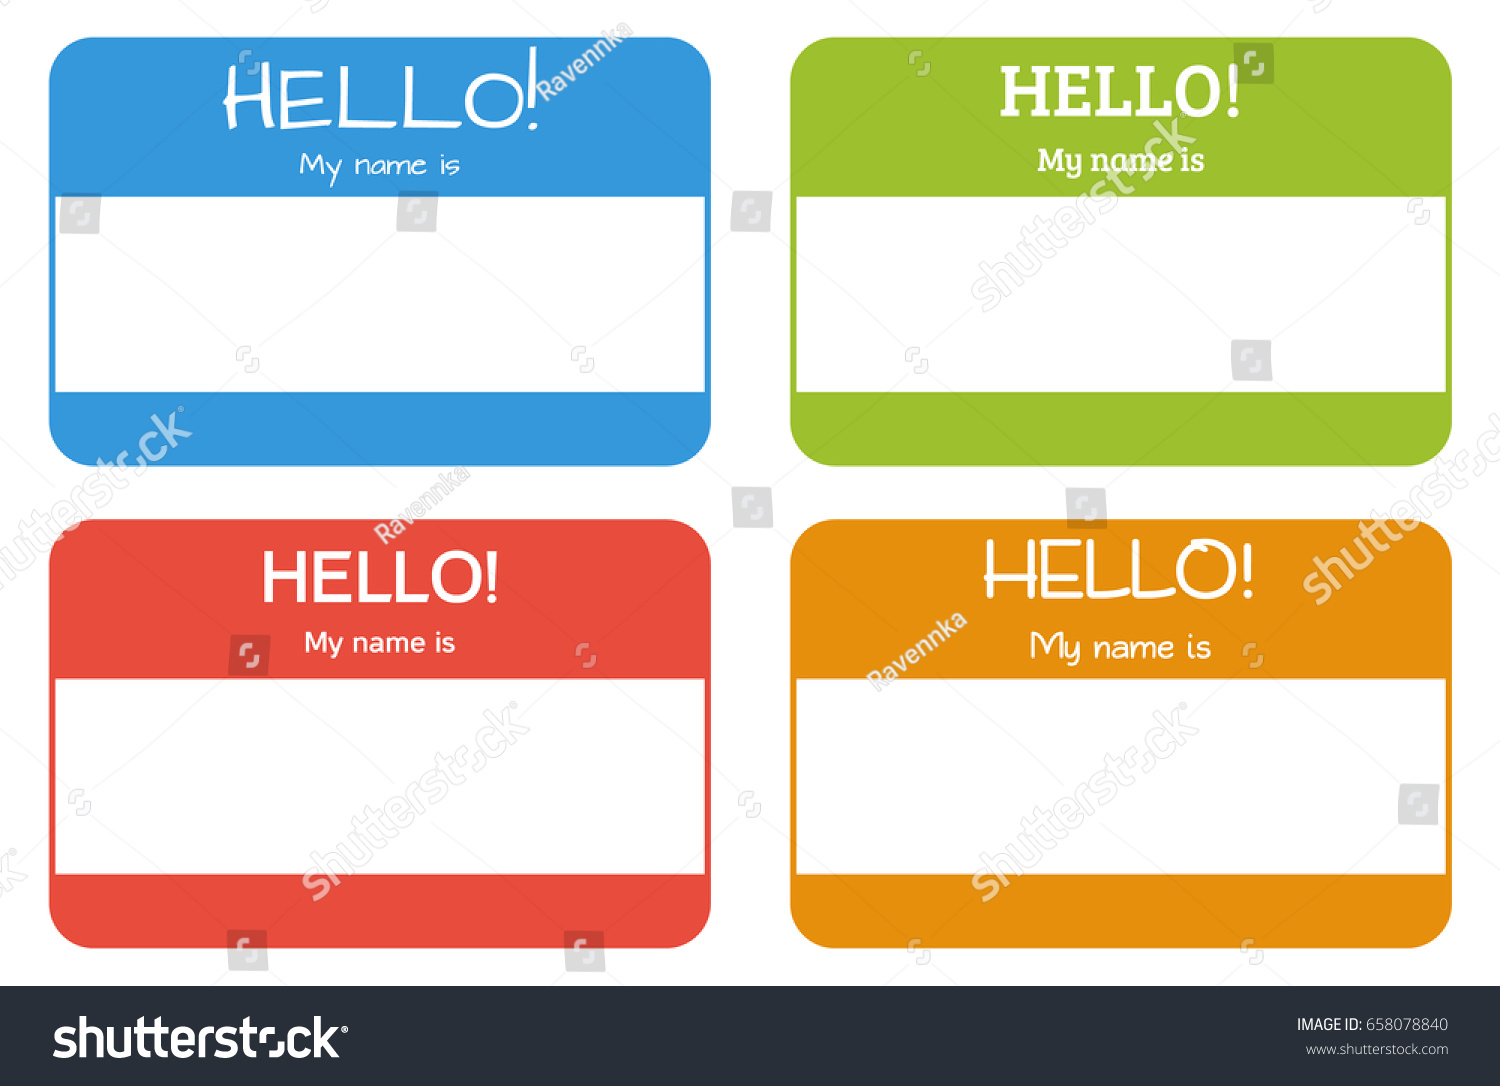 Introduction Name Card Classic Phrase Hello Stock Vector - Hello my name is tag template